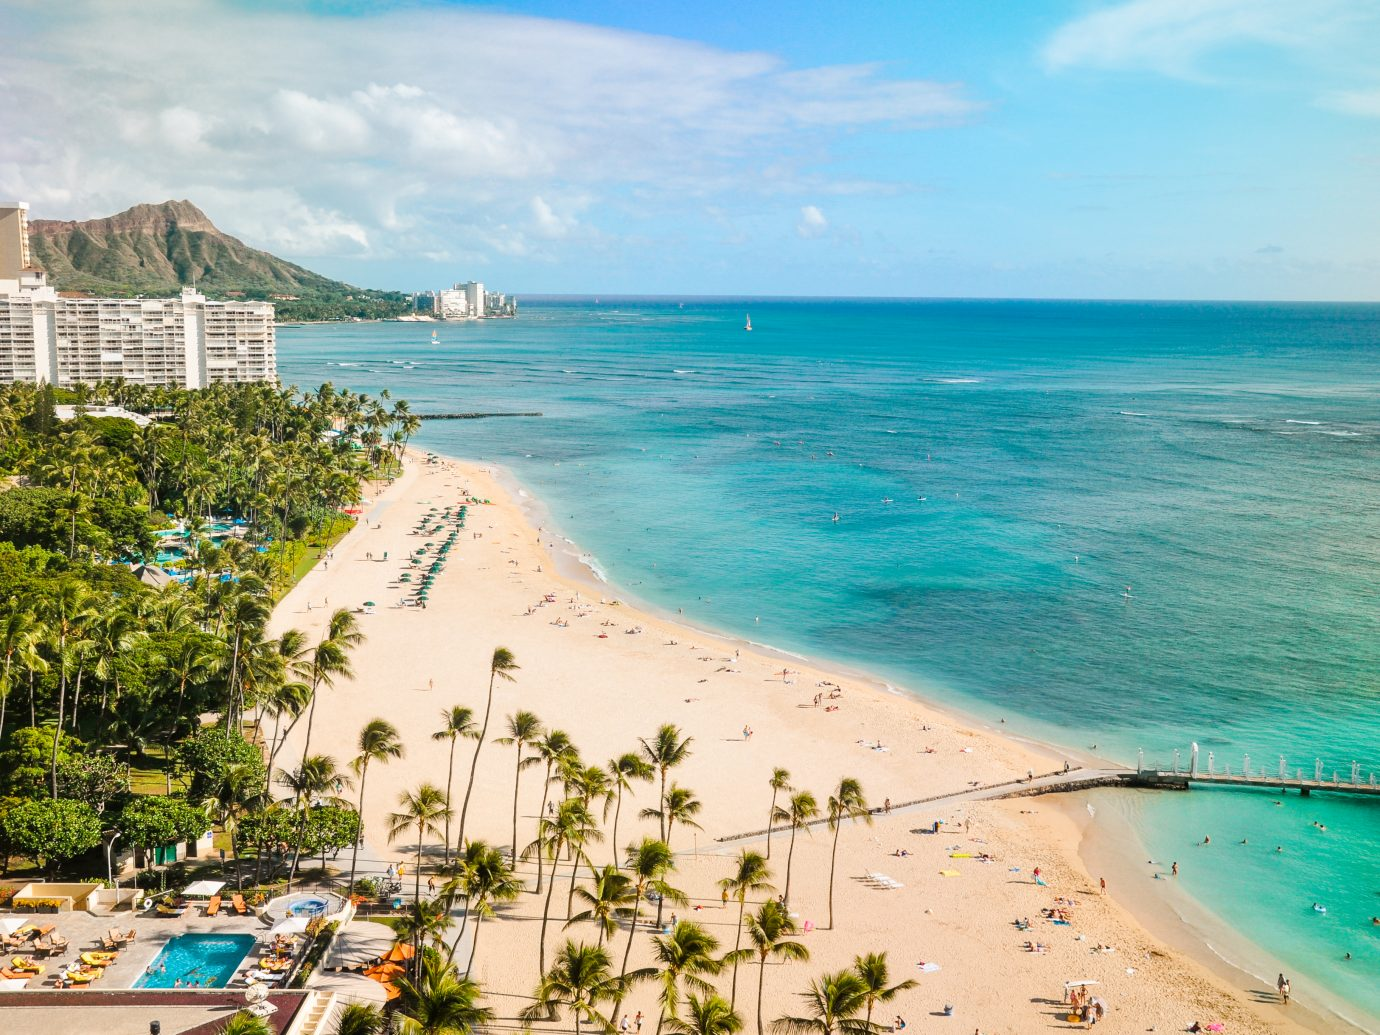 Aerial view of Waikiki Beach in Hawaii